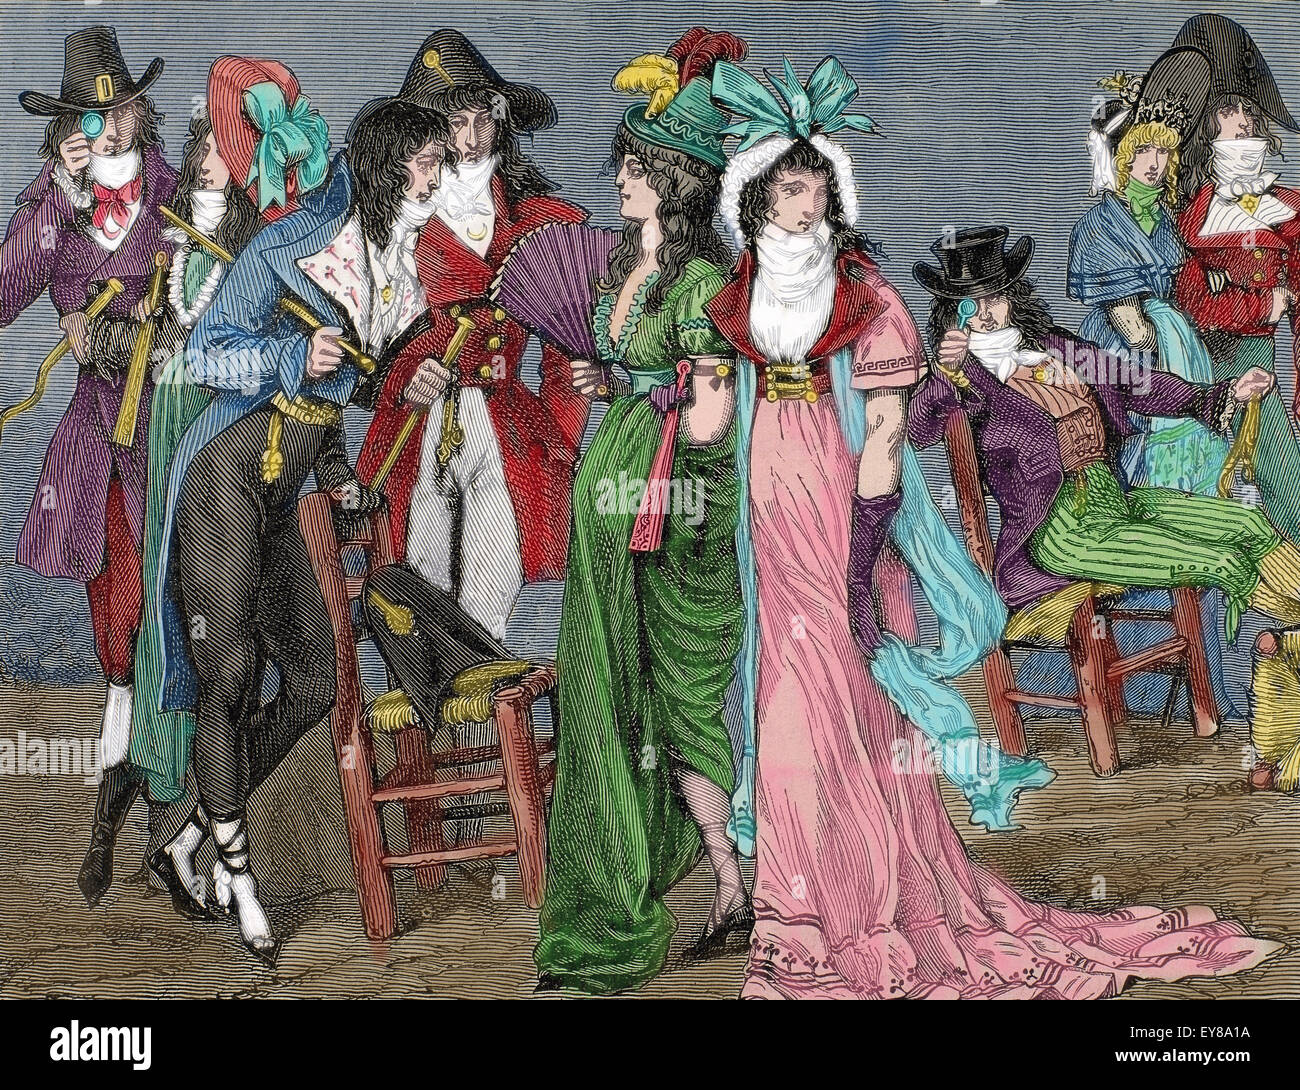 French History First Empire 1804 1820 Dressed As Bourgeois Stock Photo Royalty Free Image